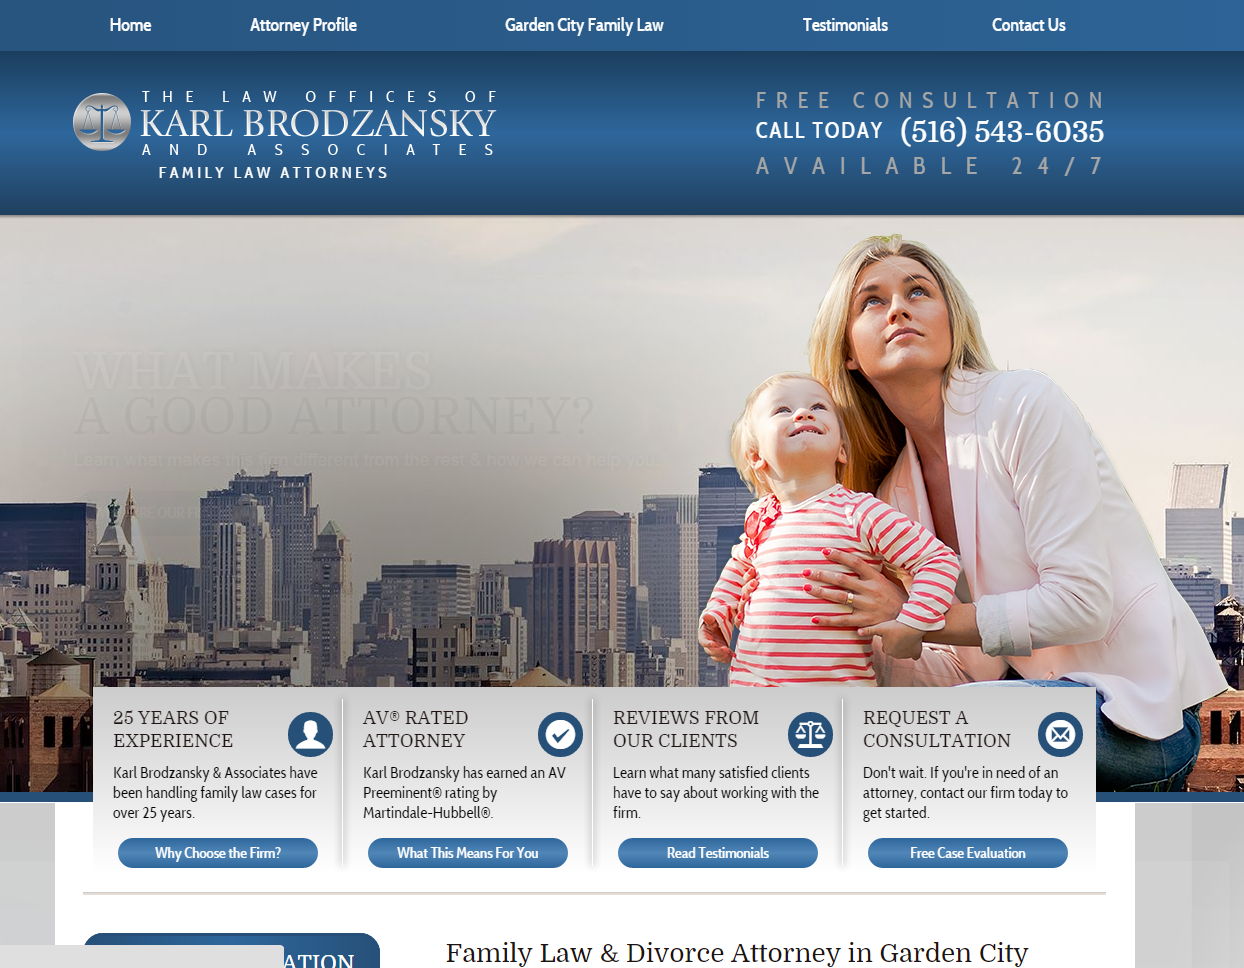 new york divorce and family law At the mandel law firm in new york city, this is the exact type of representation and counsel we provide each and every client we know every situation is different we strive to be the best divorce attorneys in new york by taking the time to learn about you and your goals so we can provide detailed advice and help you navigate your divorce.